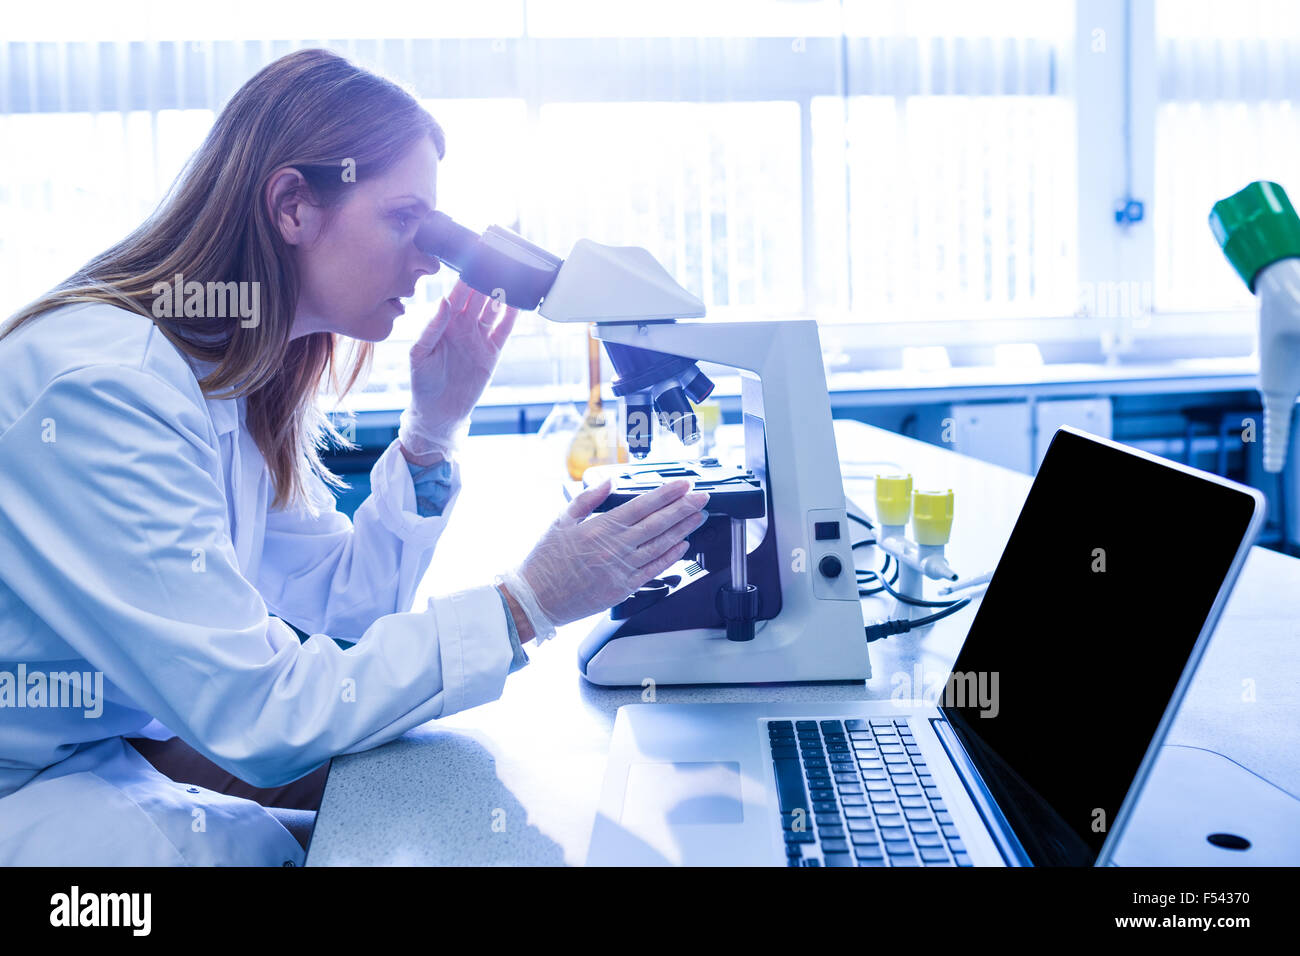 Scientist working with a microscope in laboratory - Stock Image